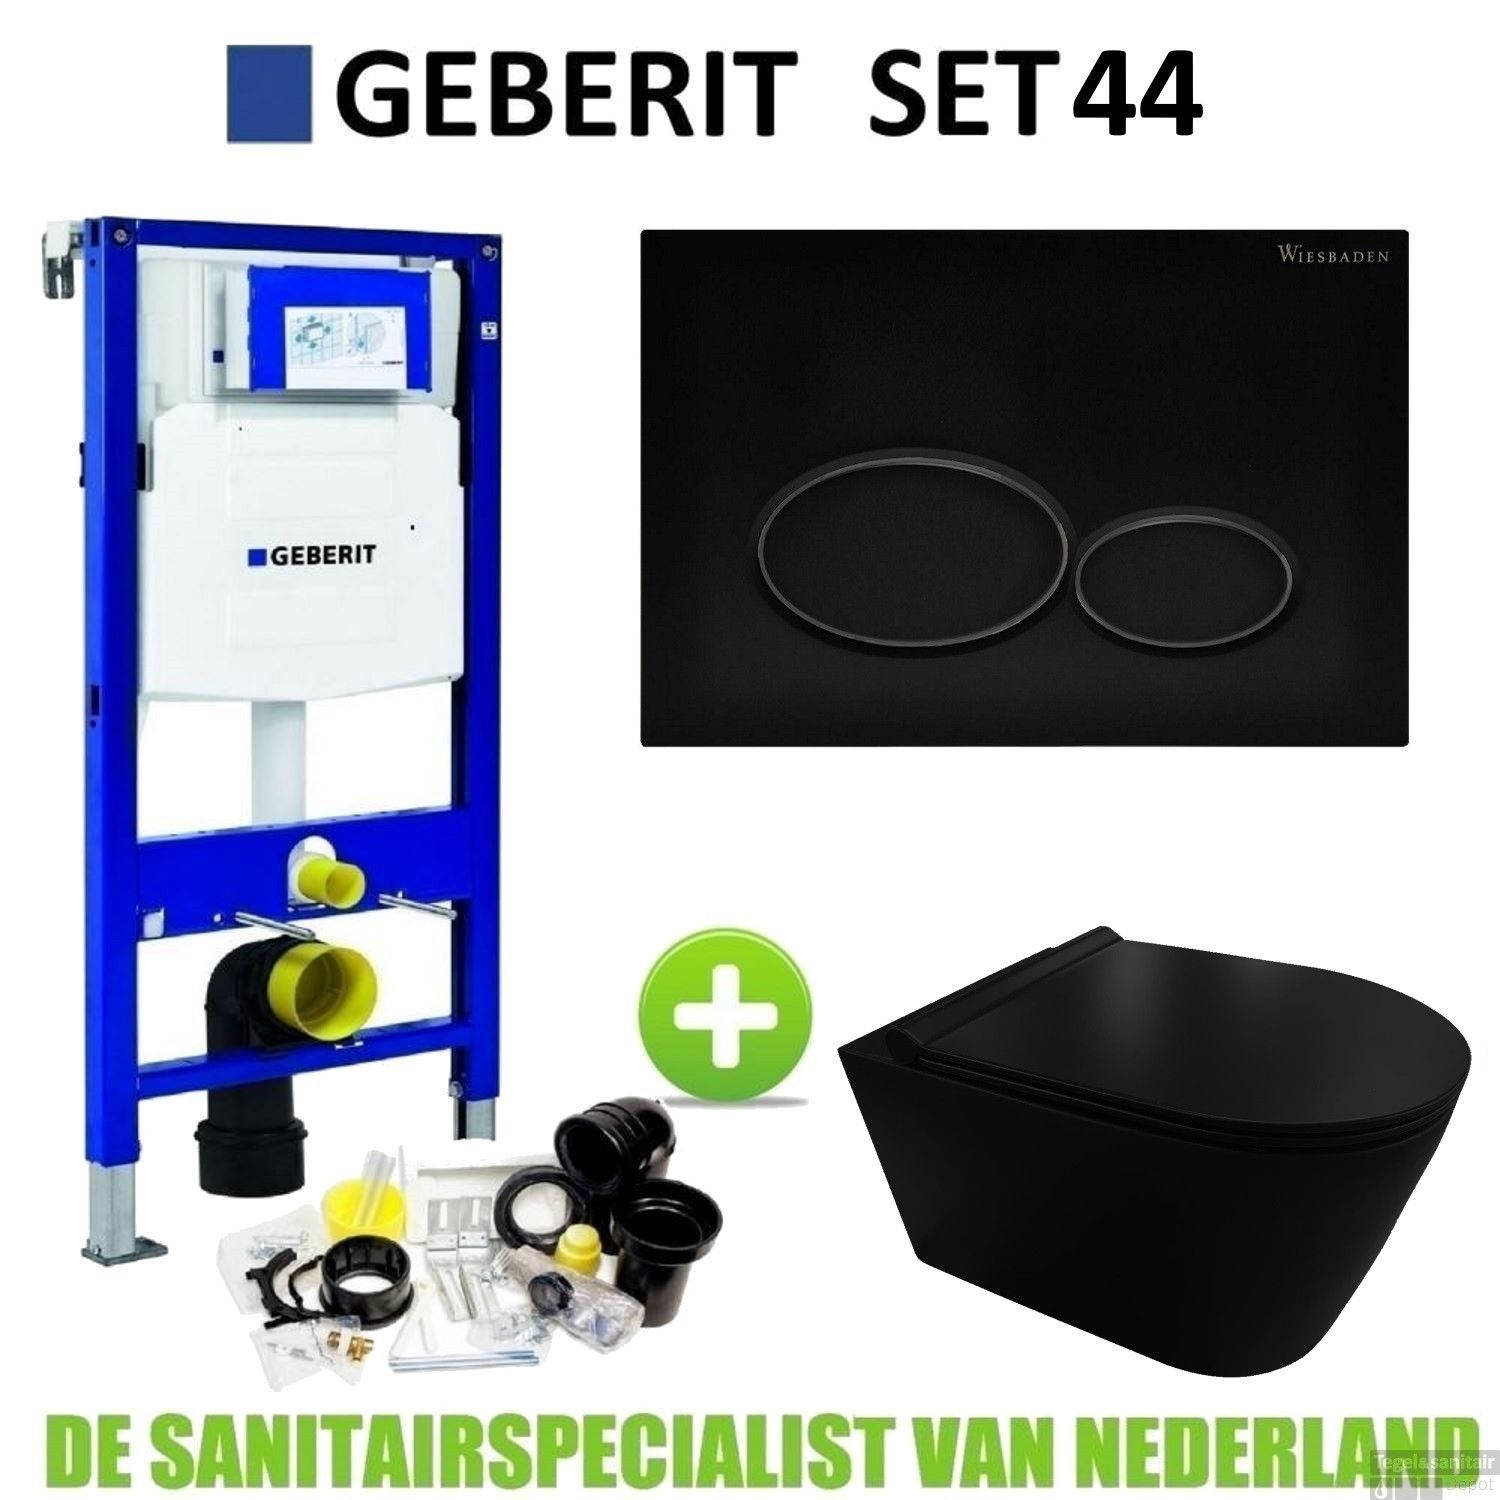 1fa6577e016 Geberit UP320 Toiletset set44 Civita Black Rimless Met Matzwarte Drukplaat